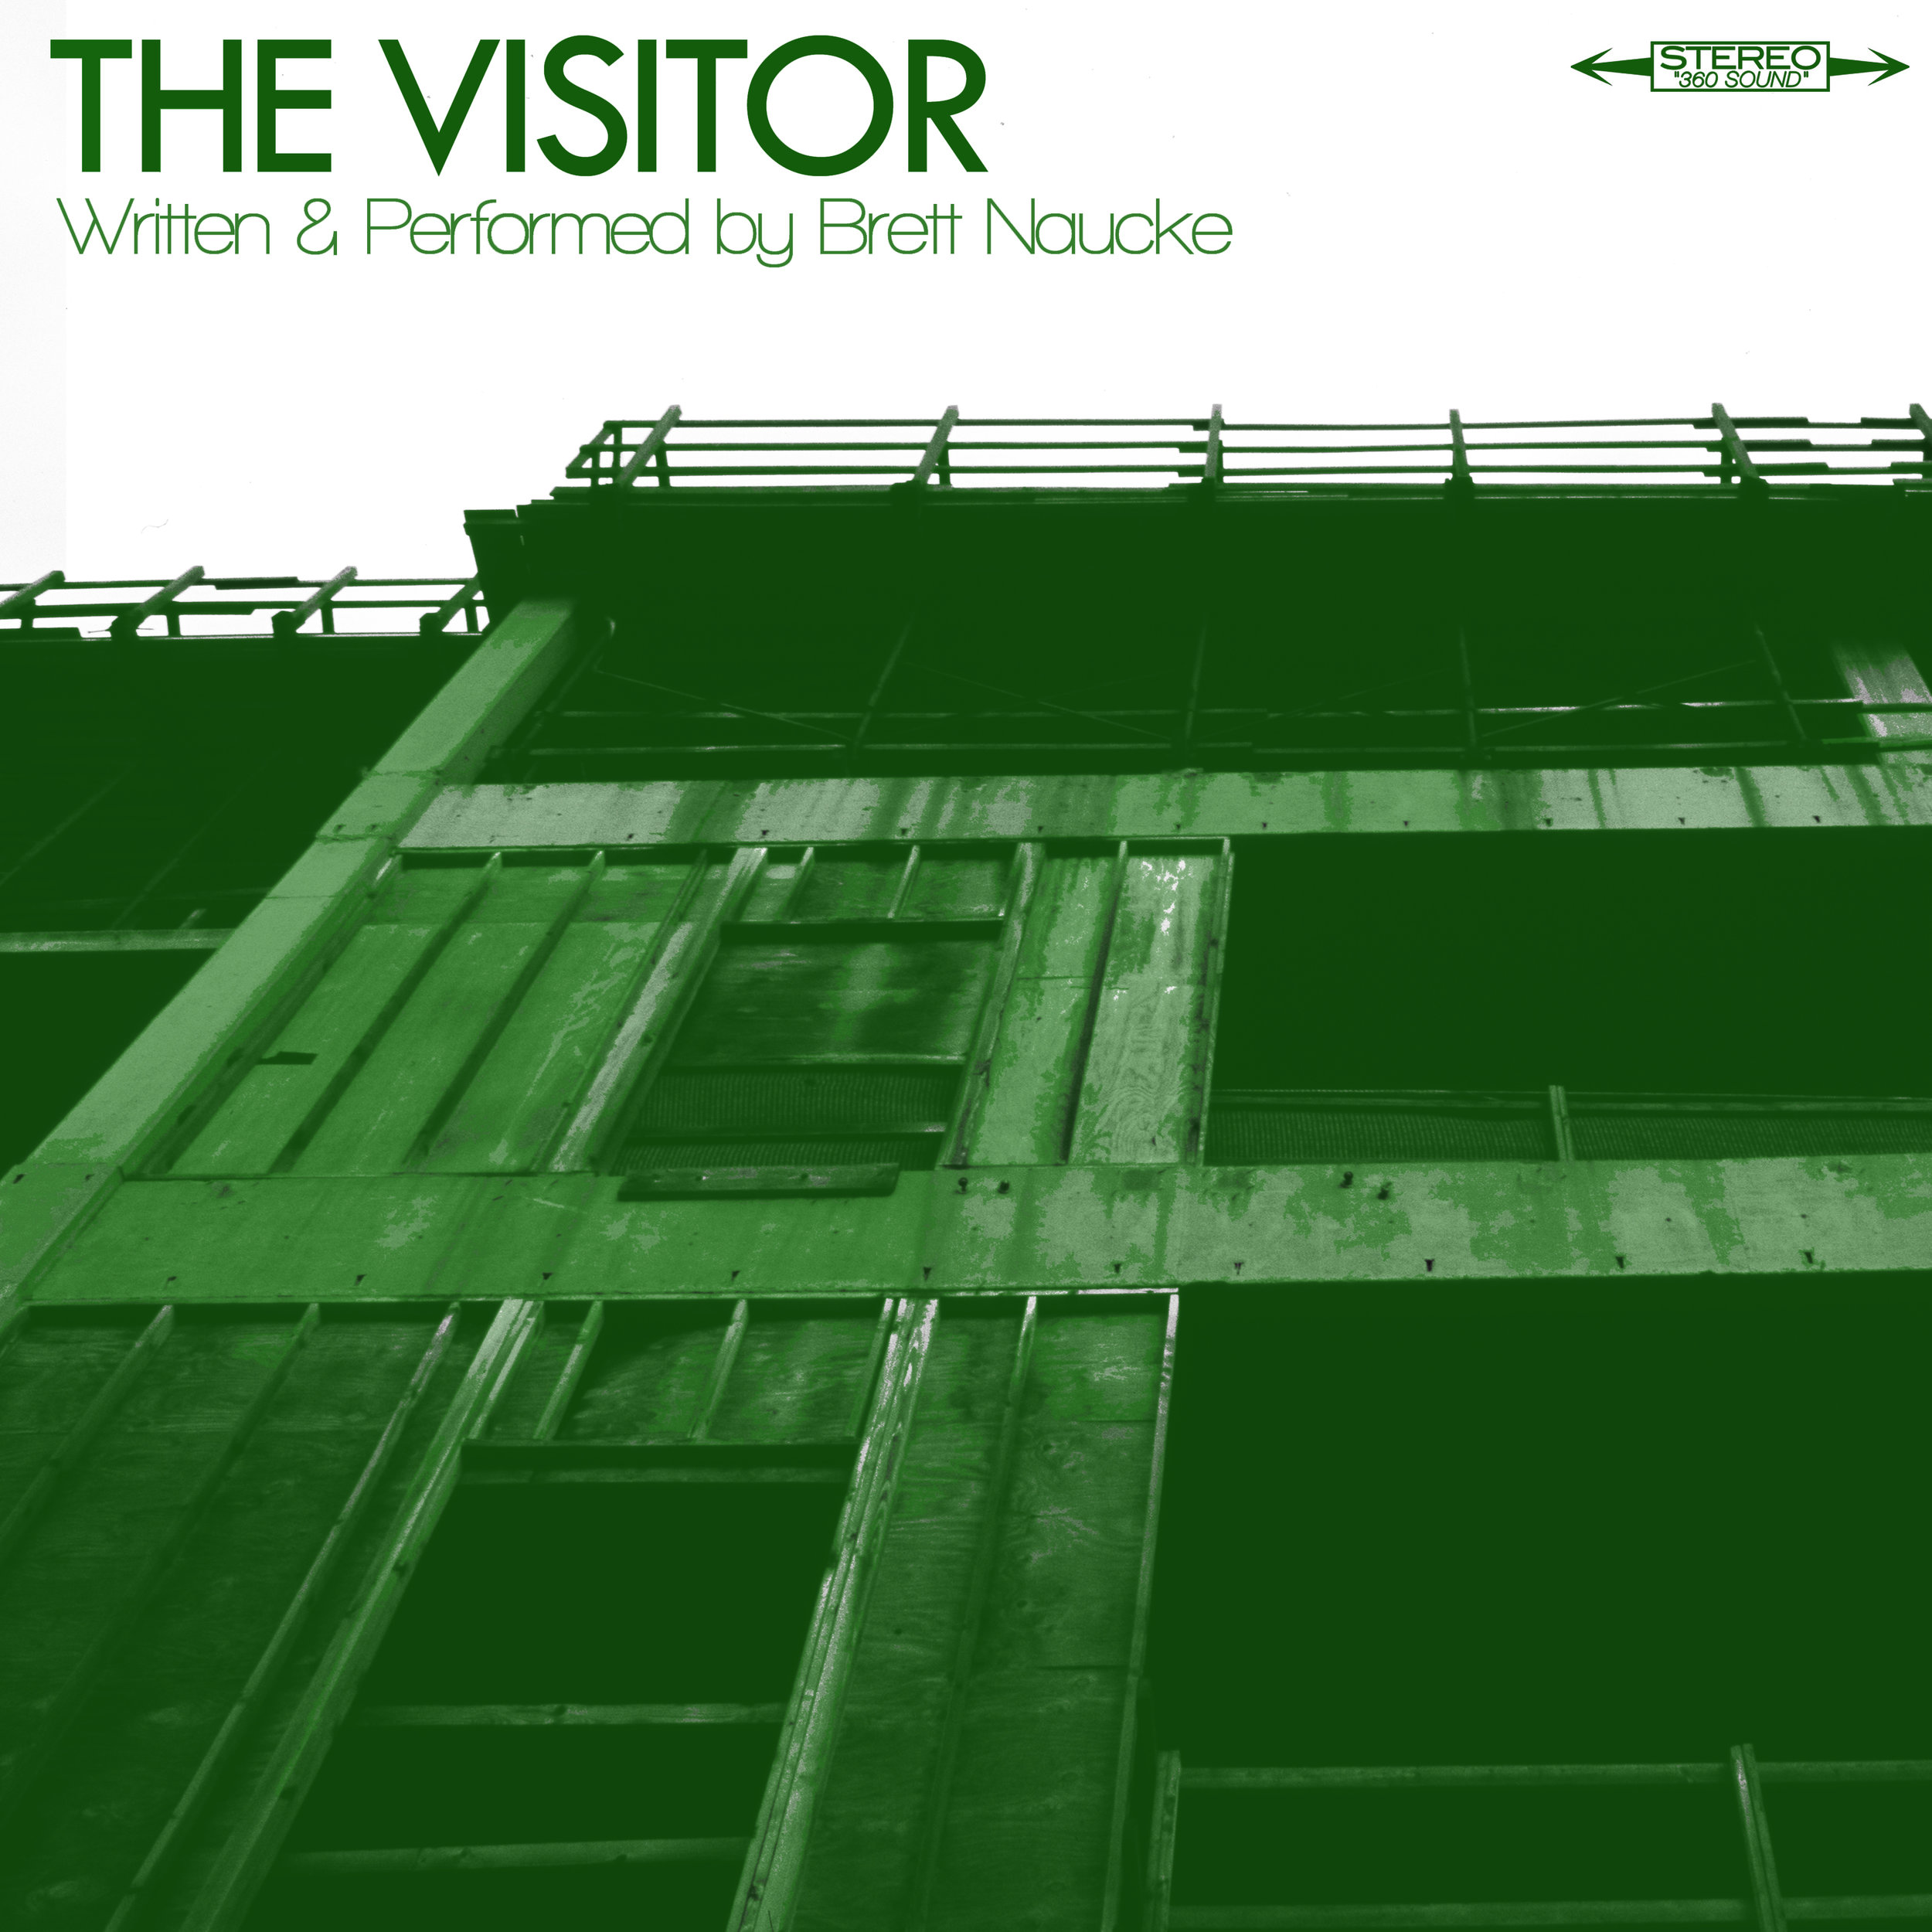 """The Visitor - (Nihilist Records) 2013Finally, we welcome Nihilist to the Cerberus fold, and what better artist to bring this union about than Brett Naucke, an experimental musician with a handful of releases to his name on labels like Arbor and Catholic Tapes, but no deluge by any means.The Visitorcharts artists like Nihilist's Andy Ortmann and Ben Vida on its way to celestial bliss, also retaining a healthy respect for pitch bends and synths that drip like liquid mercury. I used to imagine music like this sitting at my dad's synths (a temporary fascination for him when I was like 12), and here it is, crystalline and delicate as the finest china. That's """"Sun Room,"""" anyway. Other portals lead to tunnels full of crickets and fast-scattering crabs, flapping wings, ominous thumps, croaking blobs of sound, and more of that sweet liquidity. At his best, Naucke structures his compositions as one would a drone, yet imbues them with lots of little fragments rather than an overarching throb. At his worst he obsesses over clankery more than necessary. There are far worse sins to commit, and the former far eclipses the latter, so seek this out. I would say you gotta get high to listen to this shit, but The Visitormight just take you there on its own."""